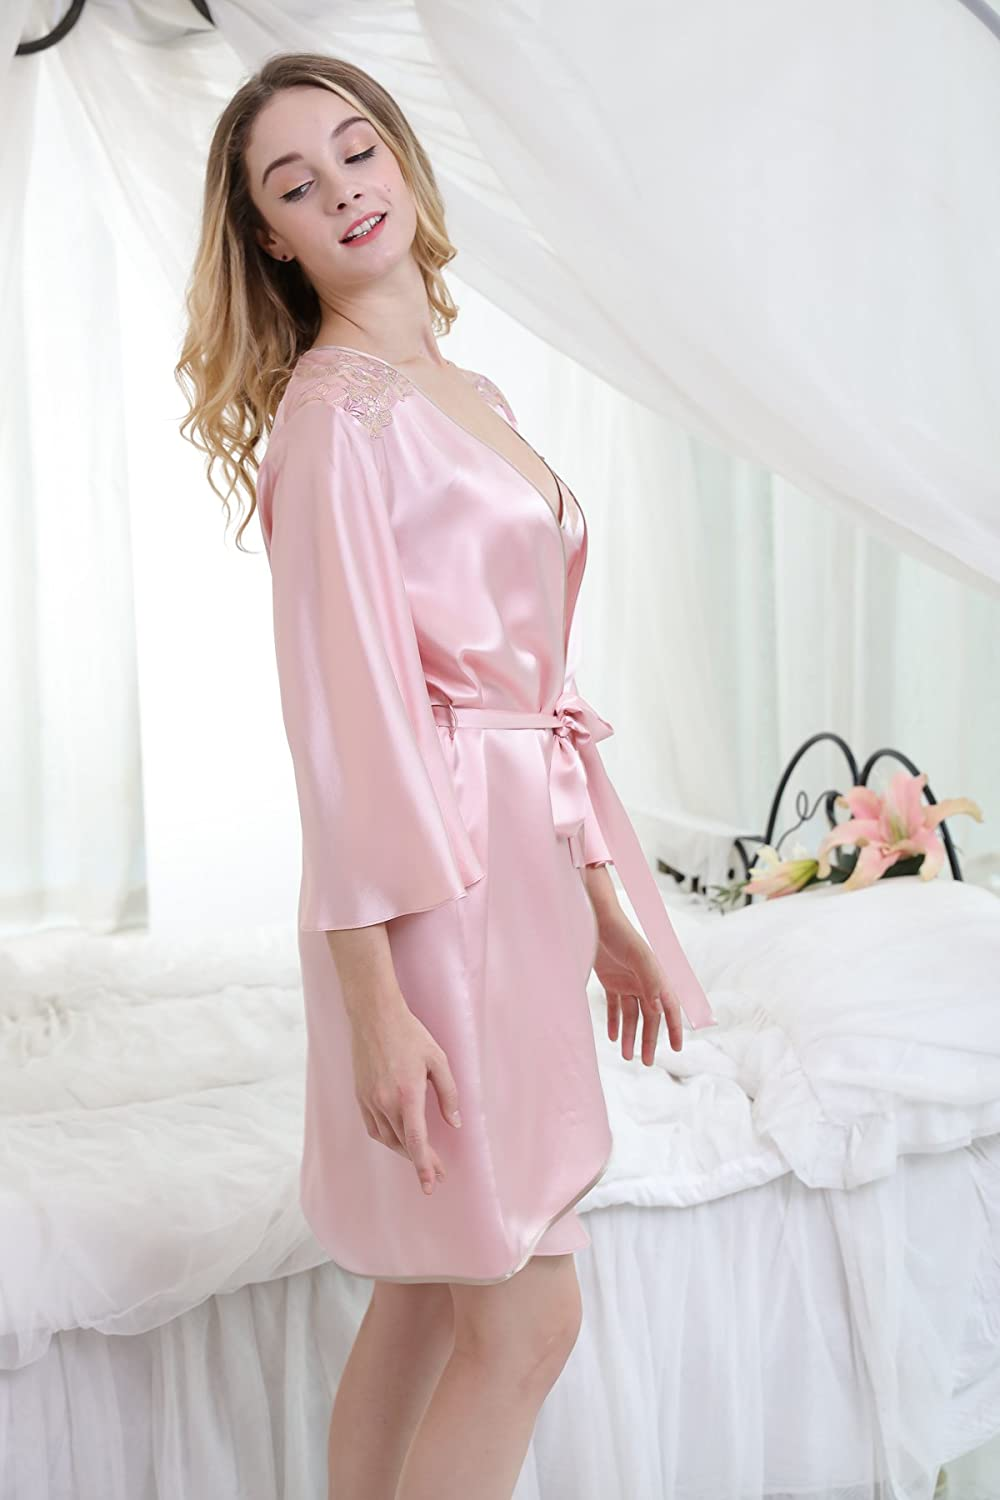 f4ebff069be7 Chesslyre Women s 100% Mulberry Silk Camisole 2 Piece Pajamas at Amazon  Women s Clothing store